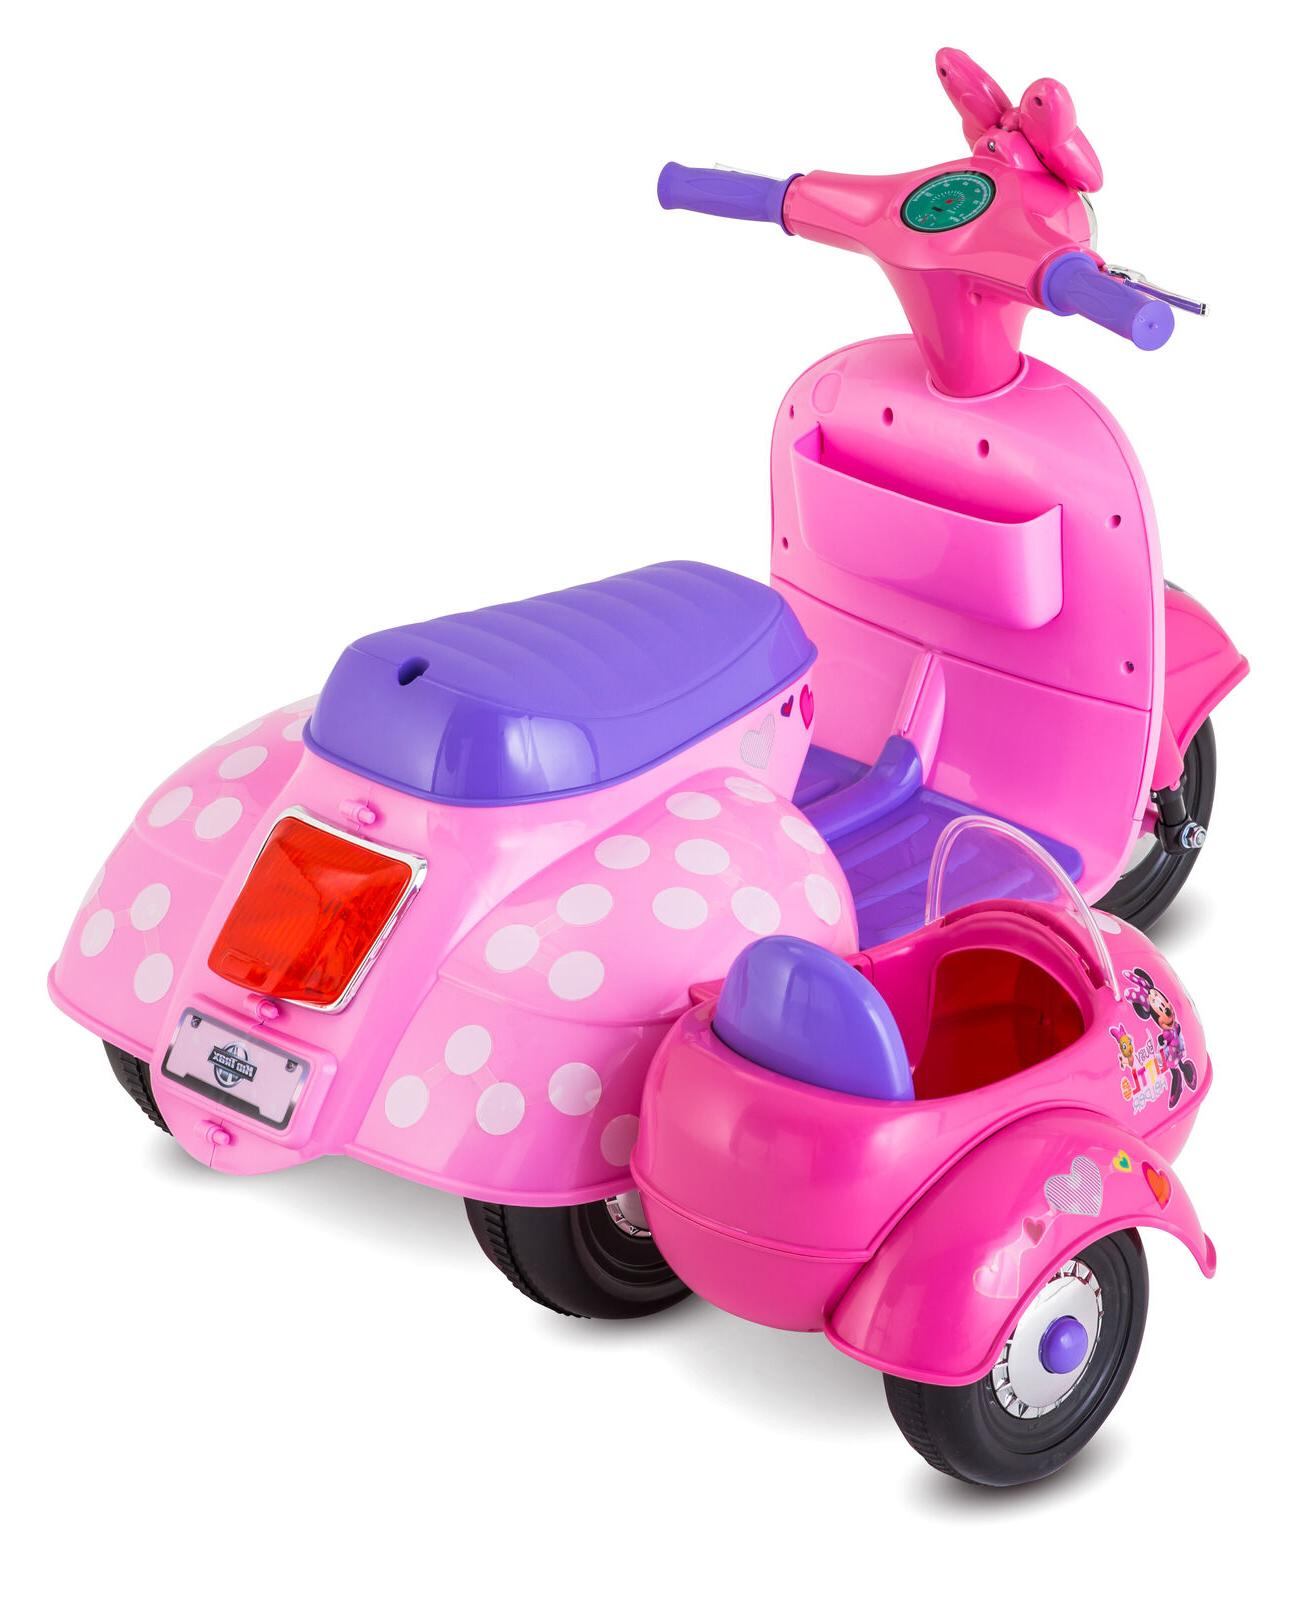 Minnie Scooter Ride On Toy Girls Sidecar Toddler